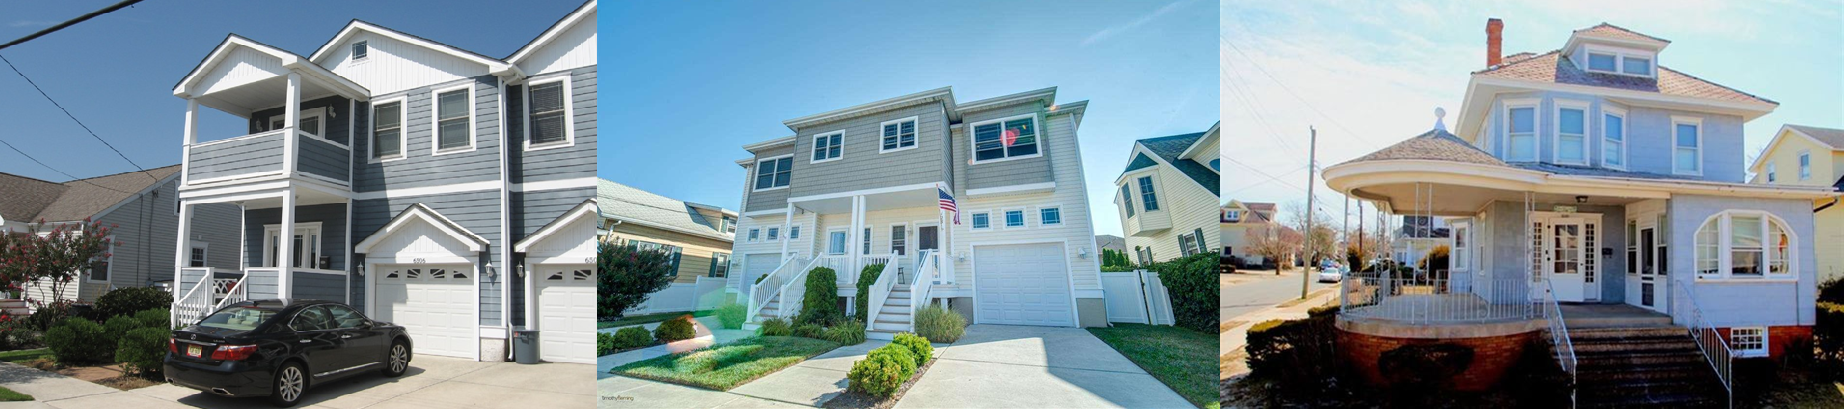 buy home near wildwood crest